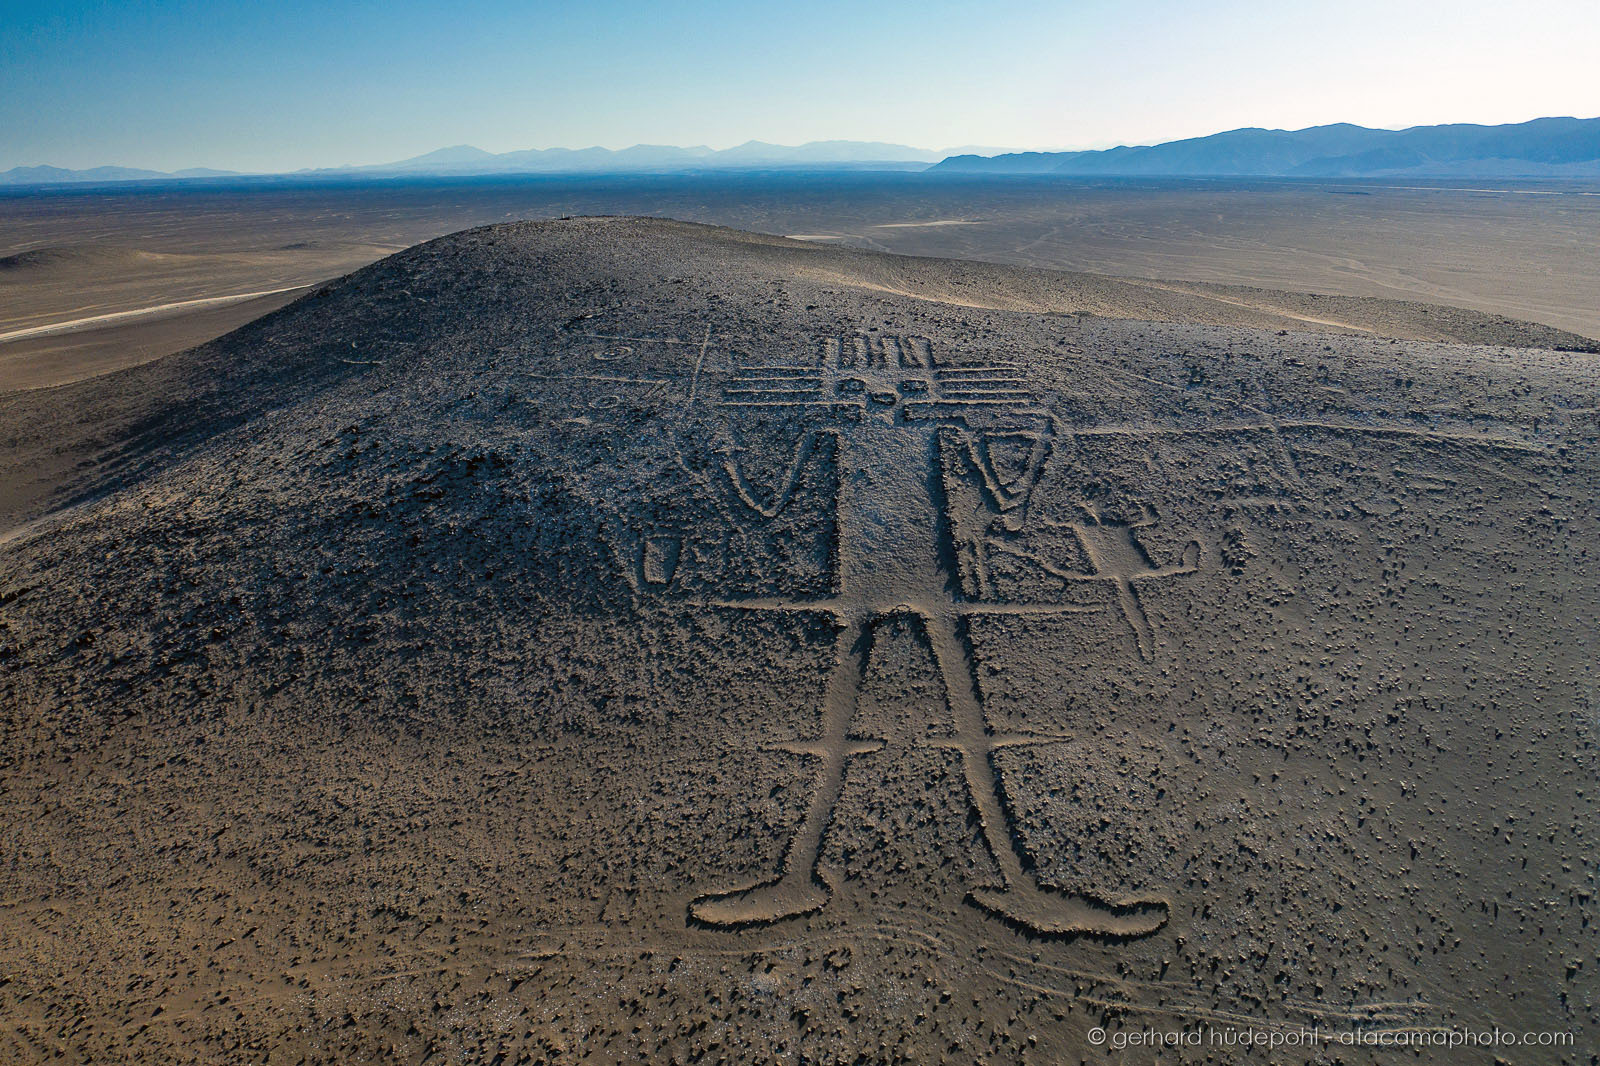 The Giant of Tarapaca (gigante de Tarapaca) on Cerro Unitas in northern Chile is the largest is the largest prehistoric anthropomorphic figure in the world